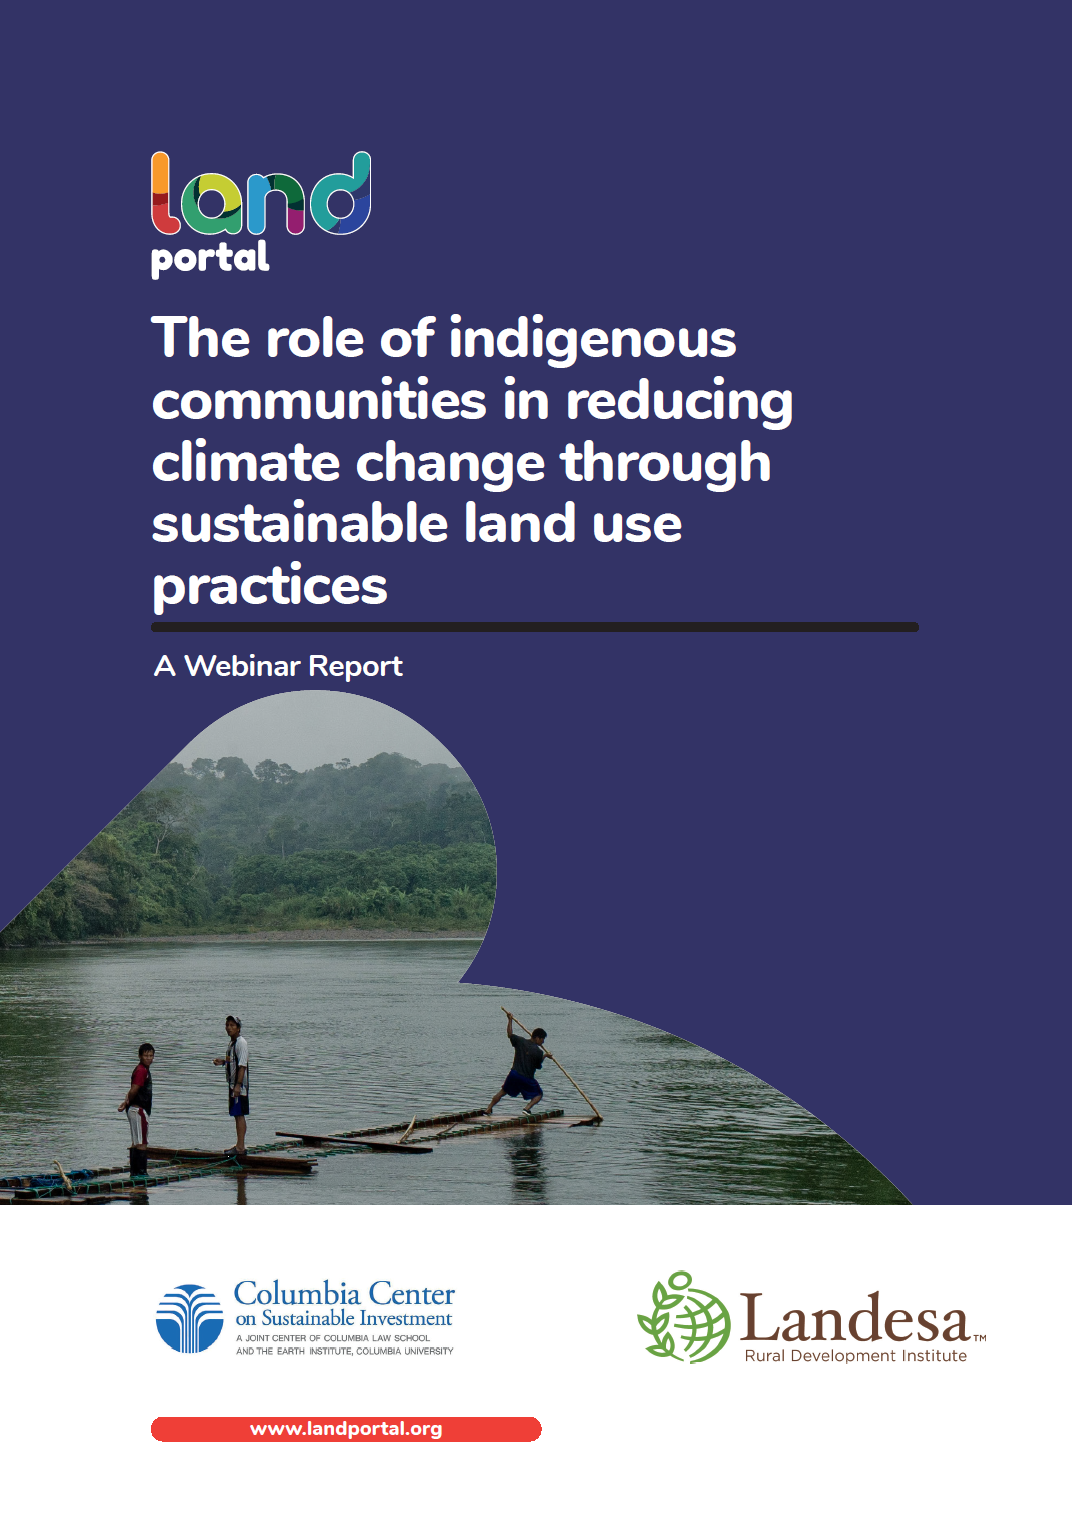 The role of indigenous communities in reducing climate change through sustainable land use practices